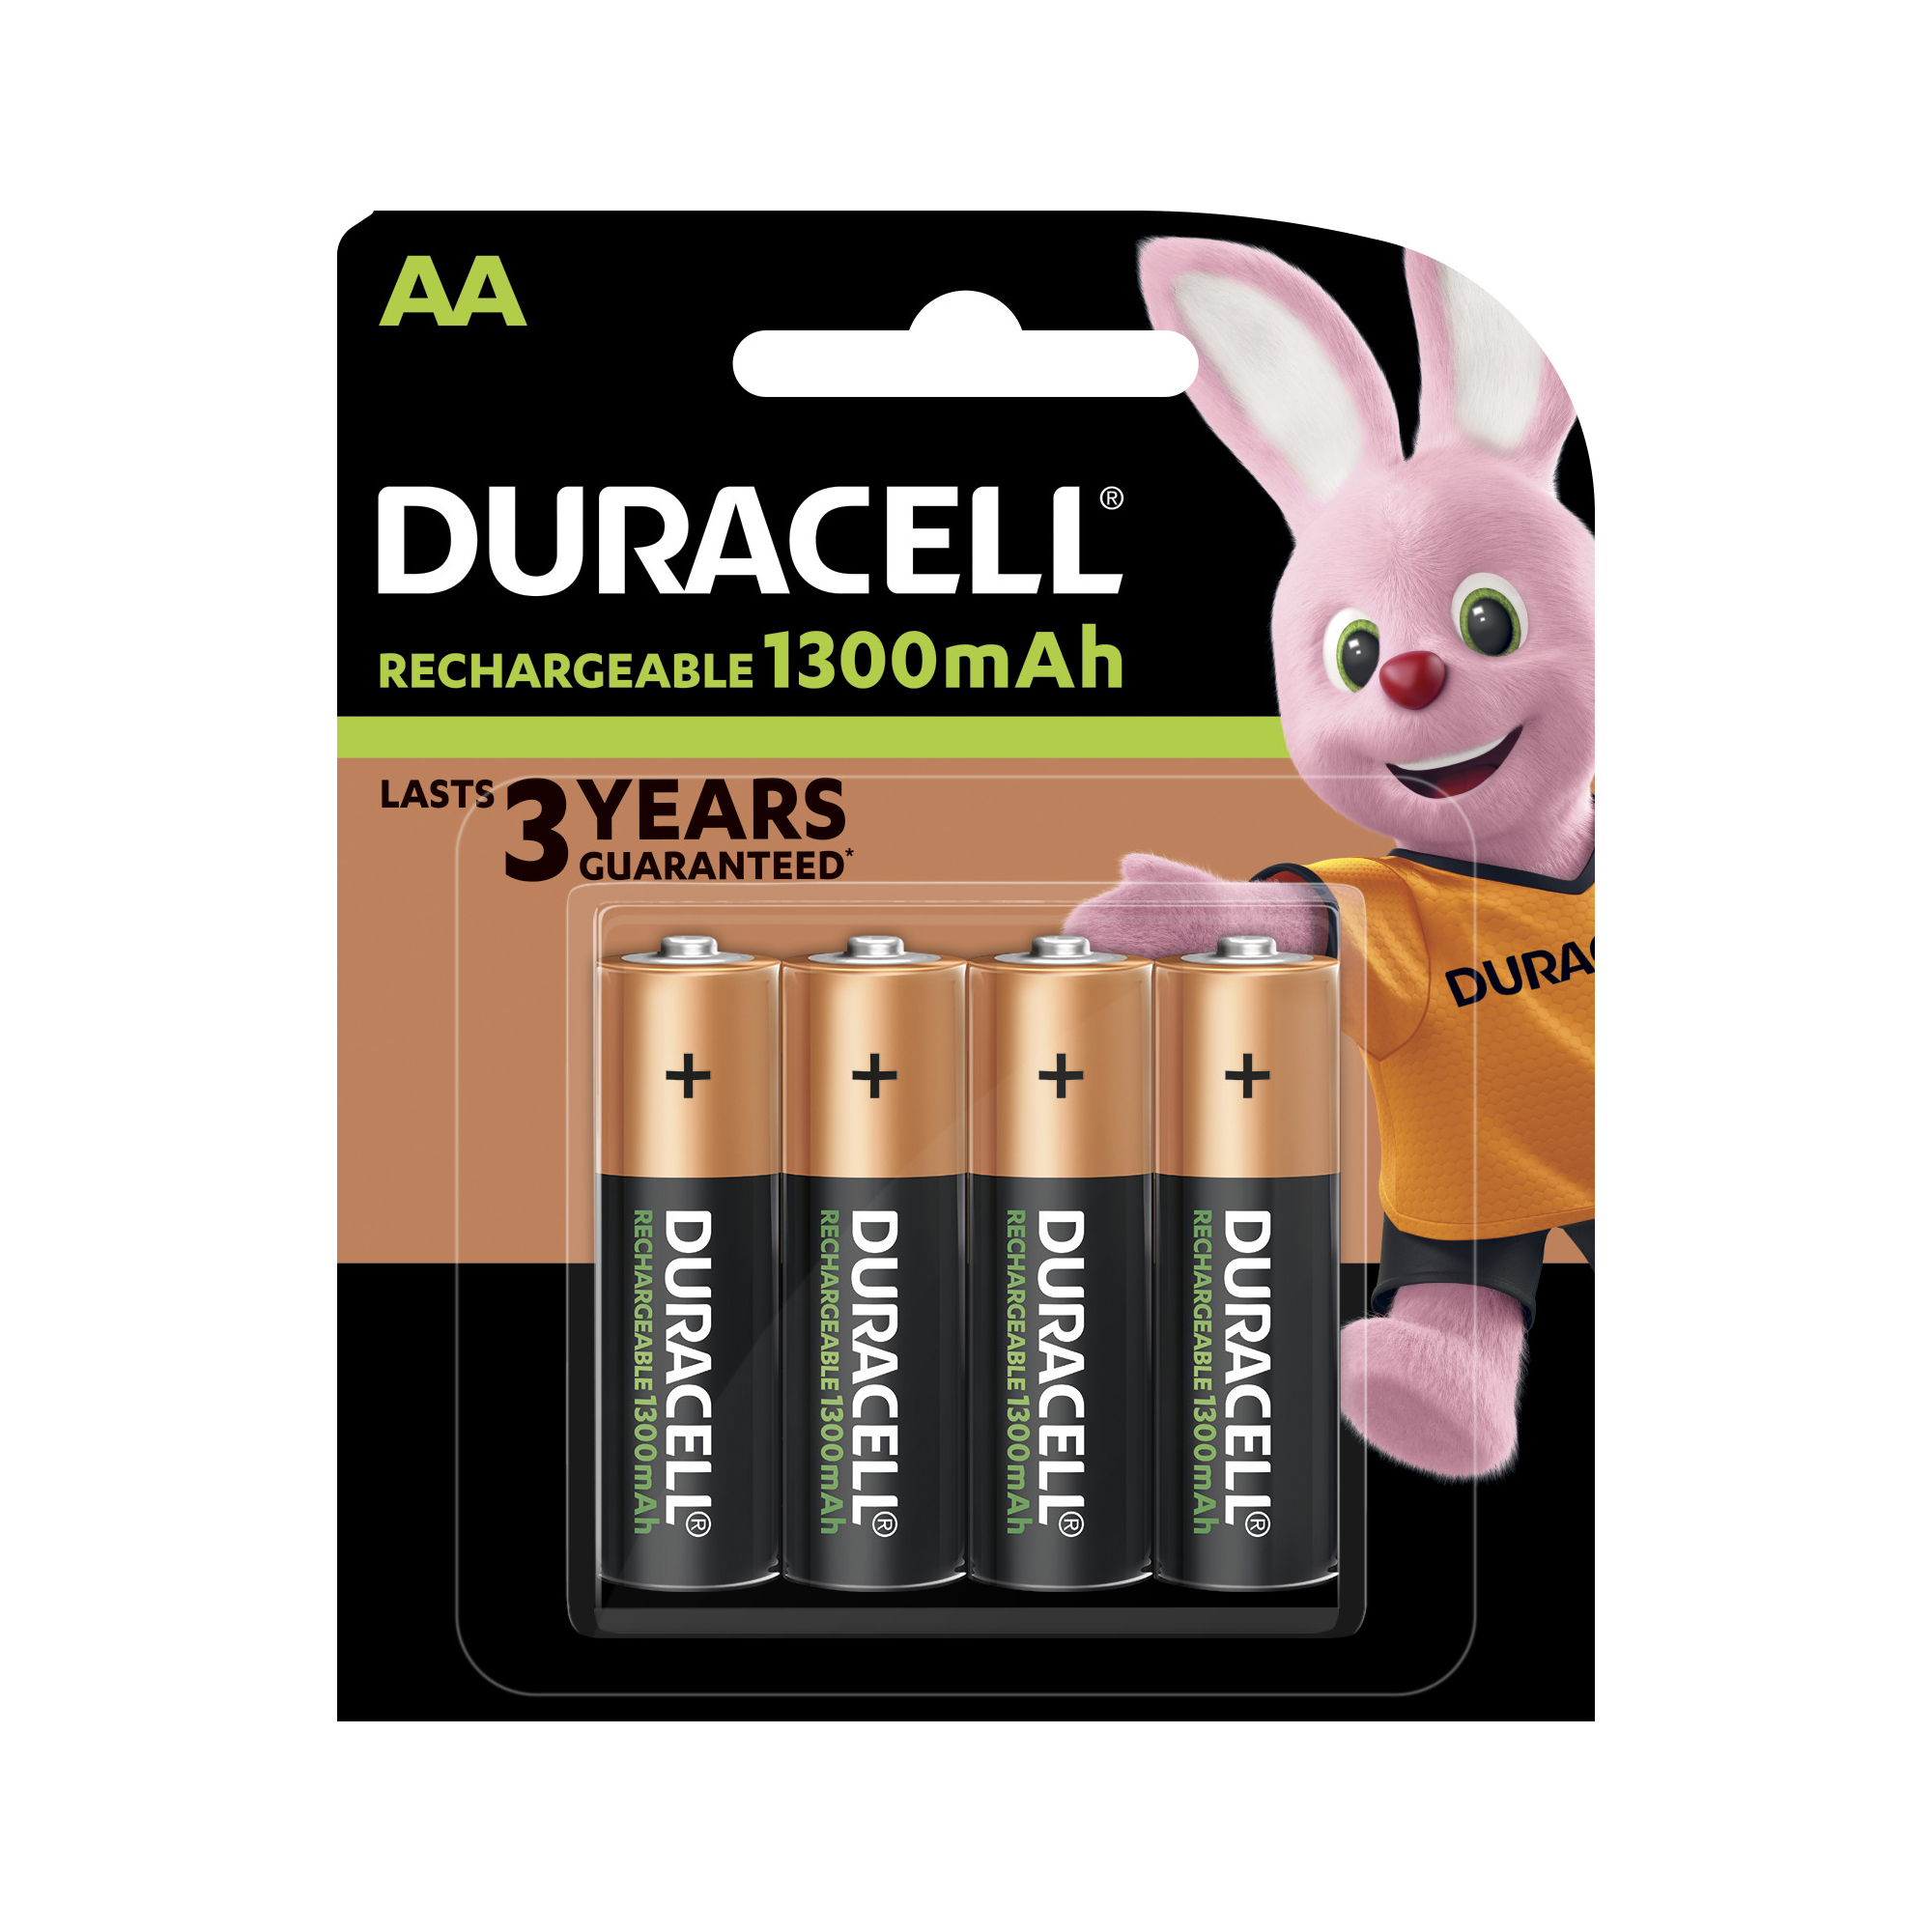 Duracell Battery Rechargeable Accu NiMH 1300mAh AA Ref 81367177 Pack 4